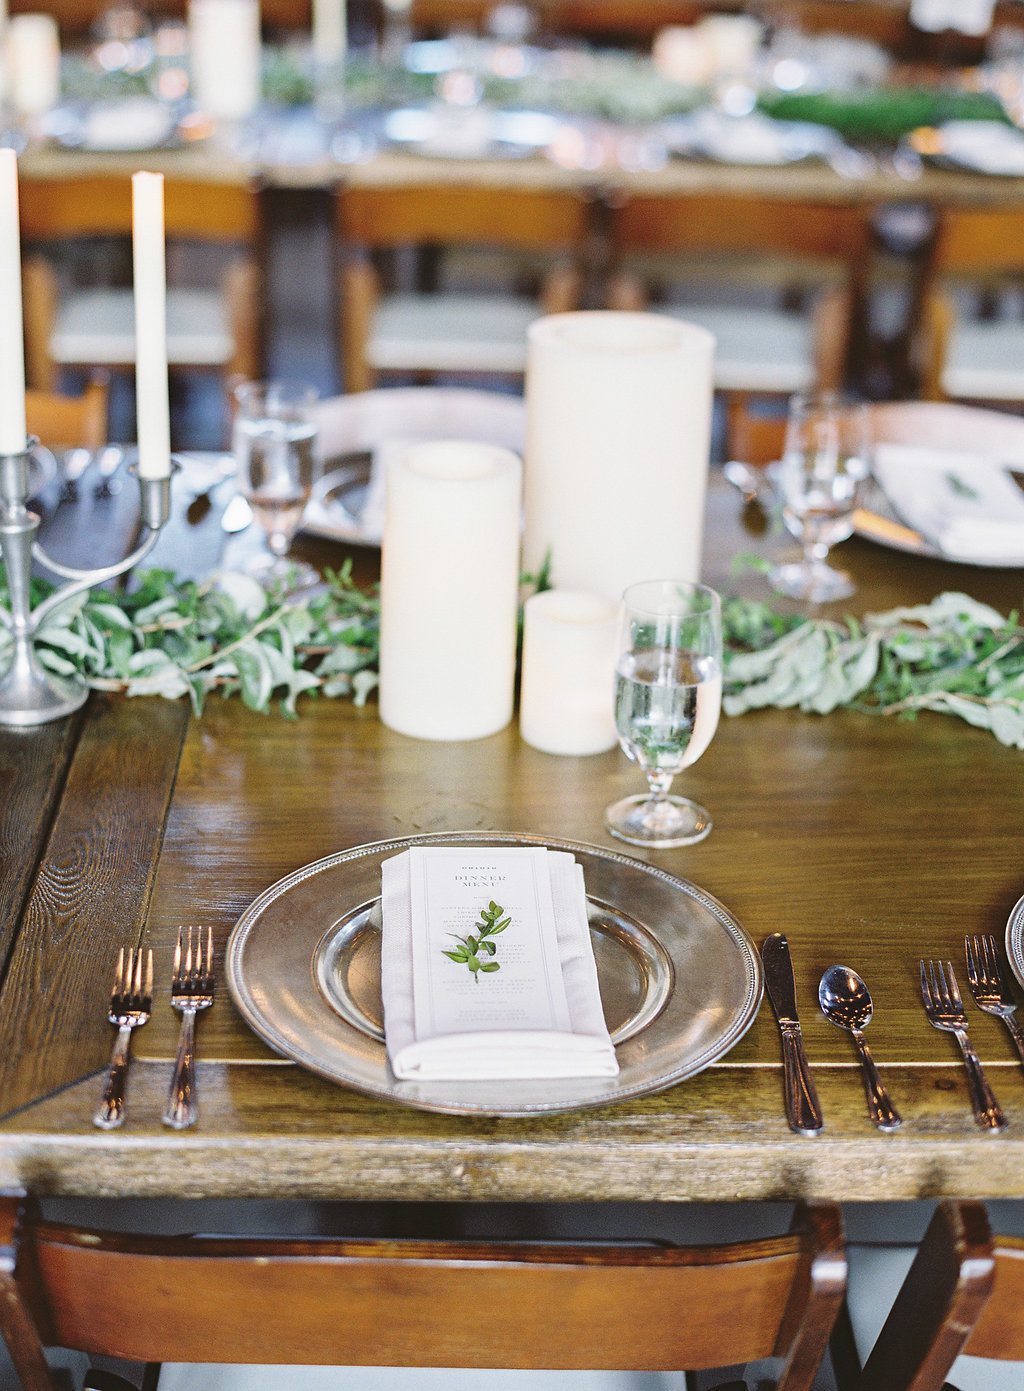 SawyerBaird_CM Tablescape